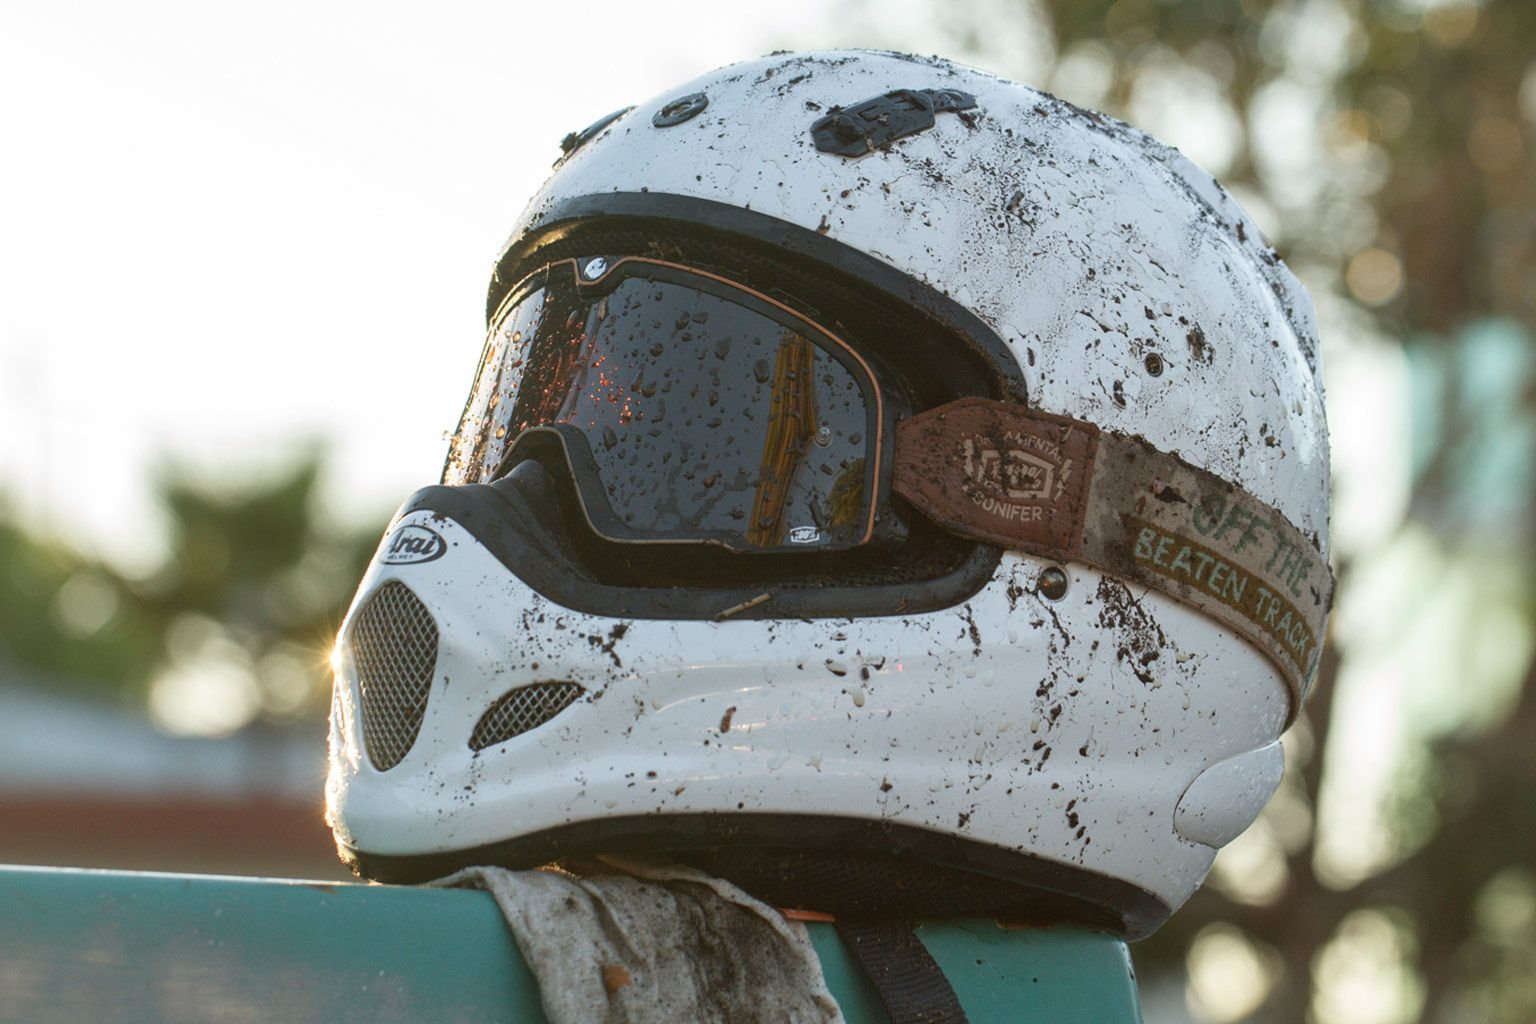 37d3755d466522 Masque 100 percent Barstow Ornamental Conifer   Helmets   Motocross ...